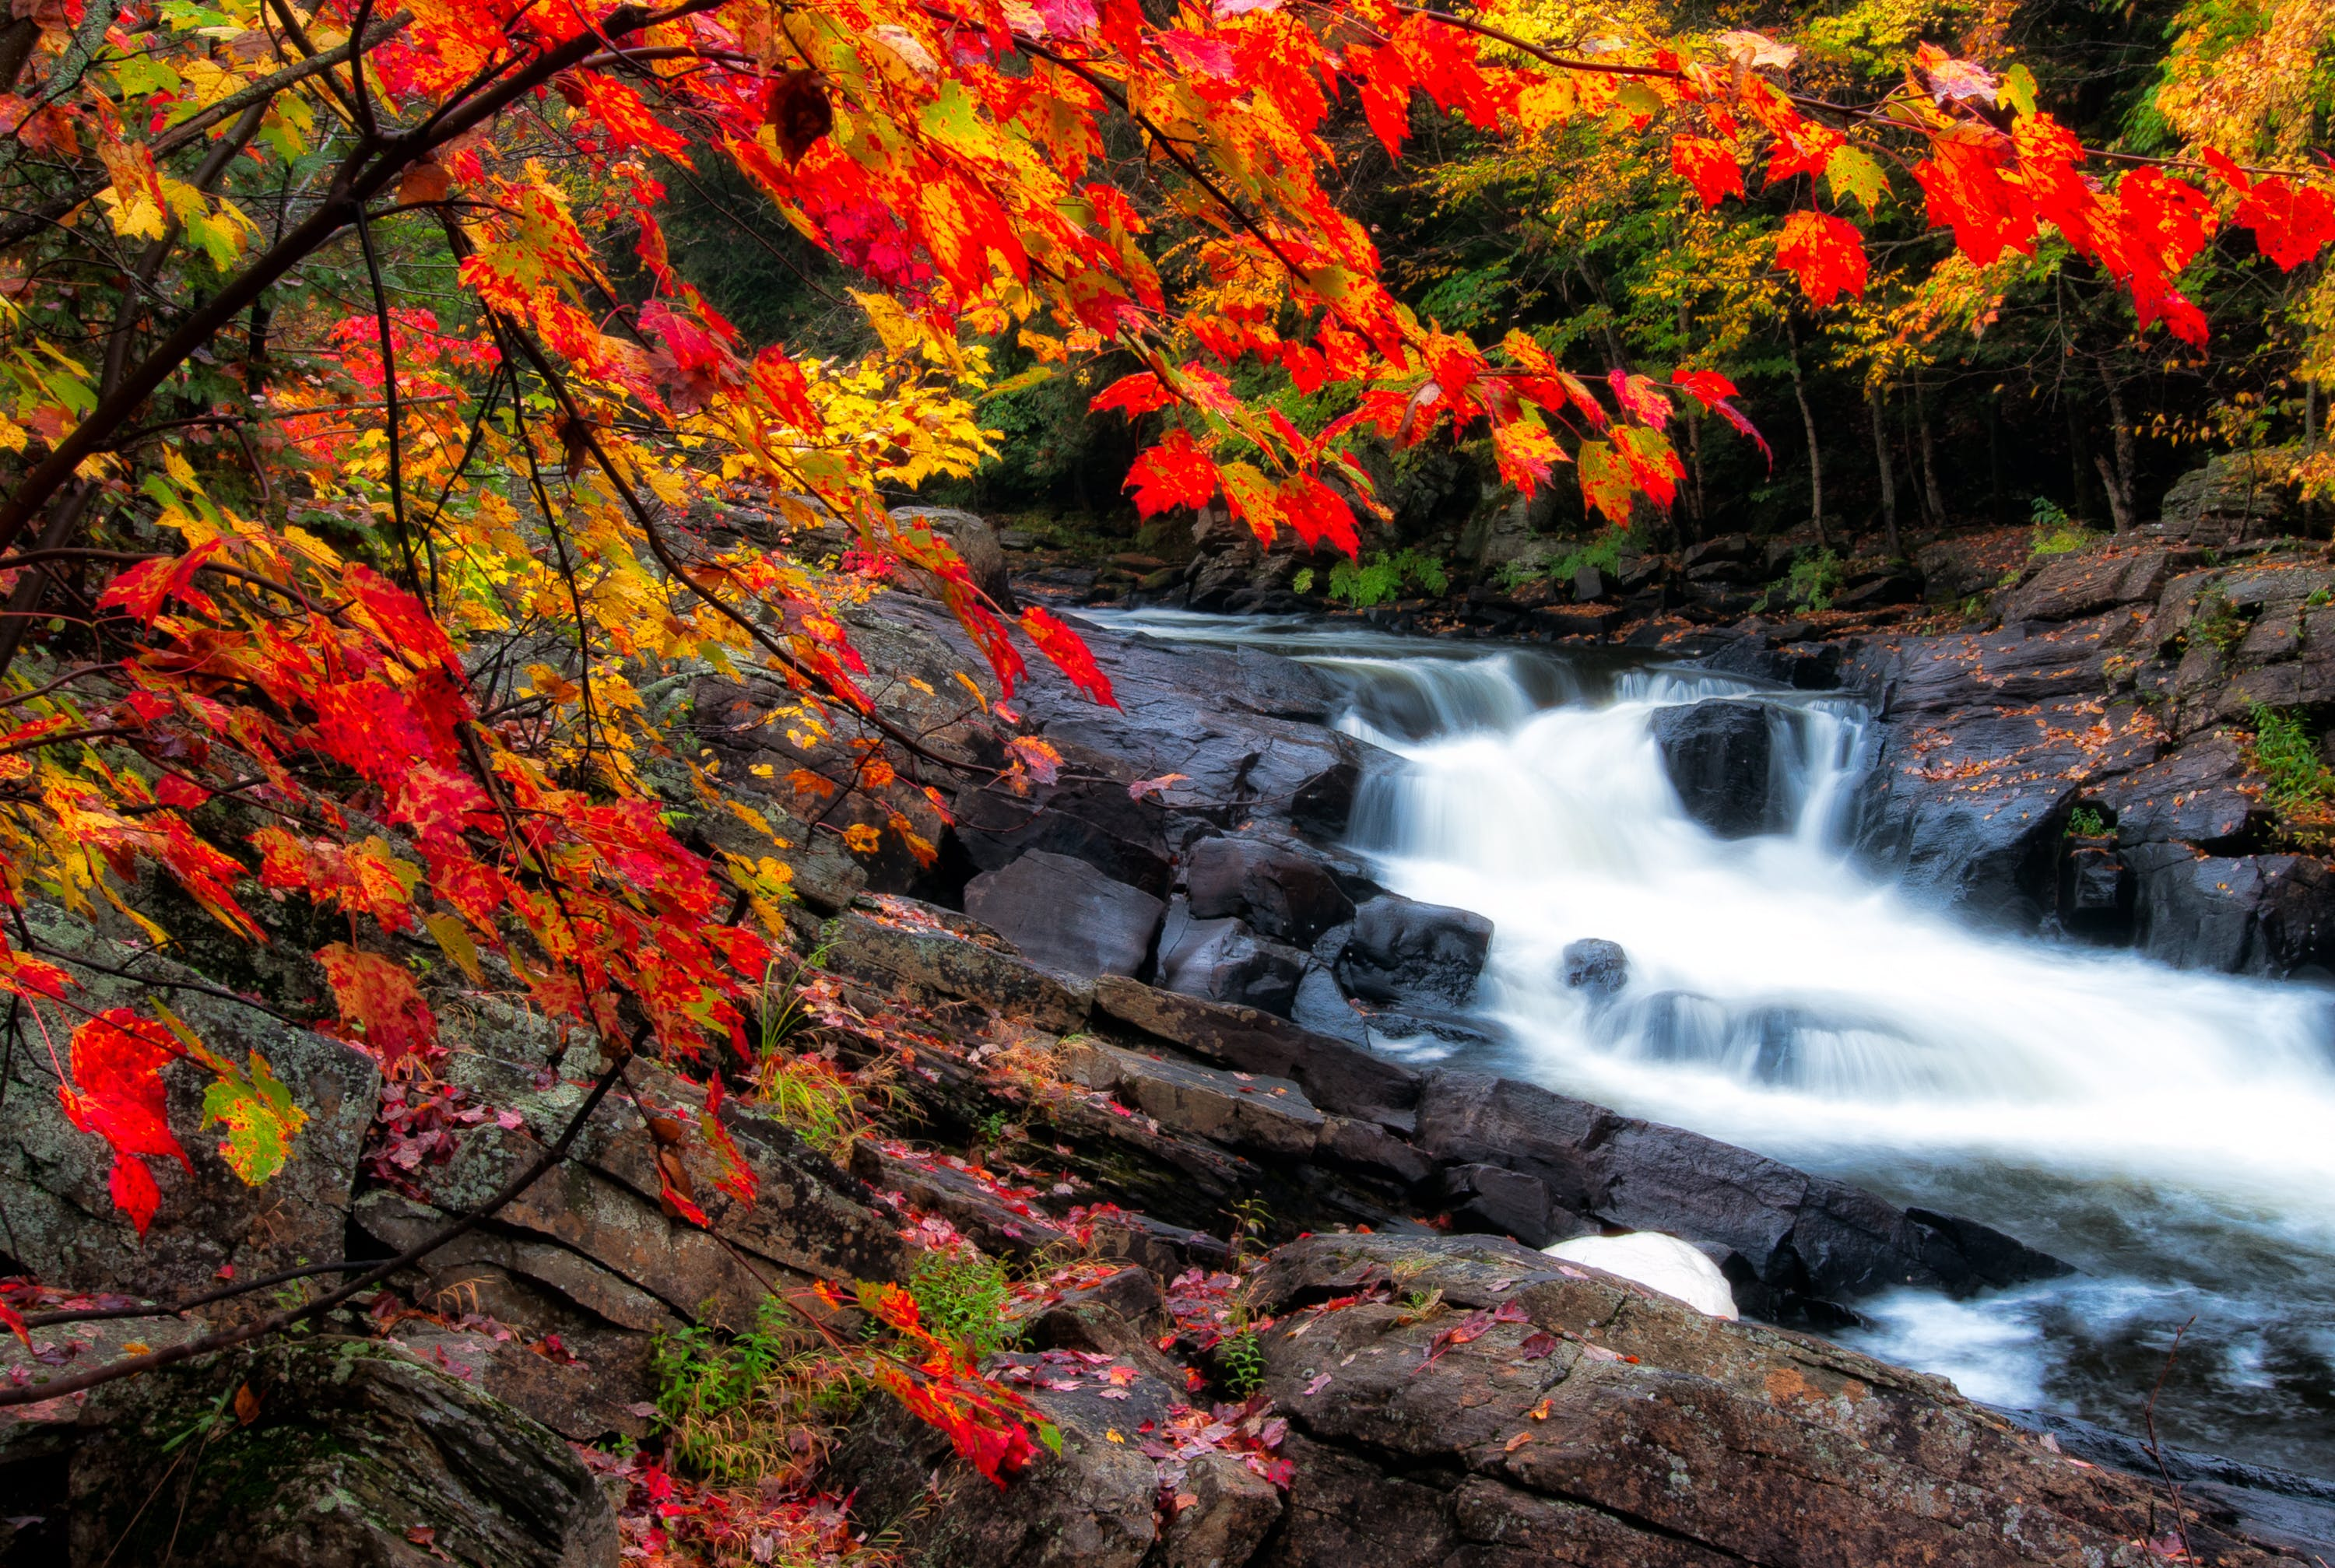 Photo of Waterfalls During Fall Season